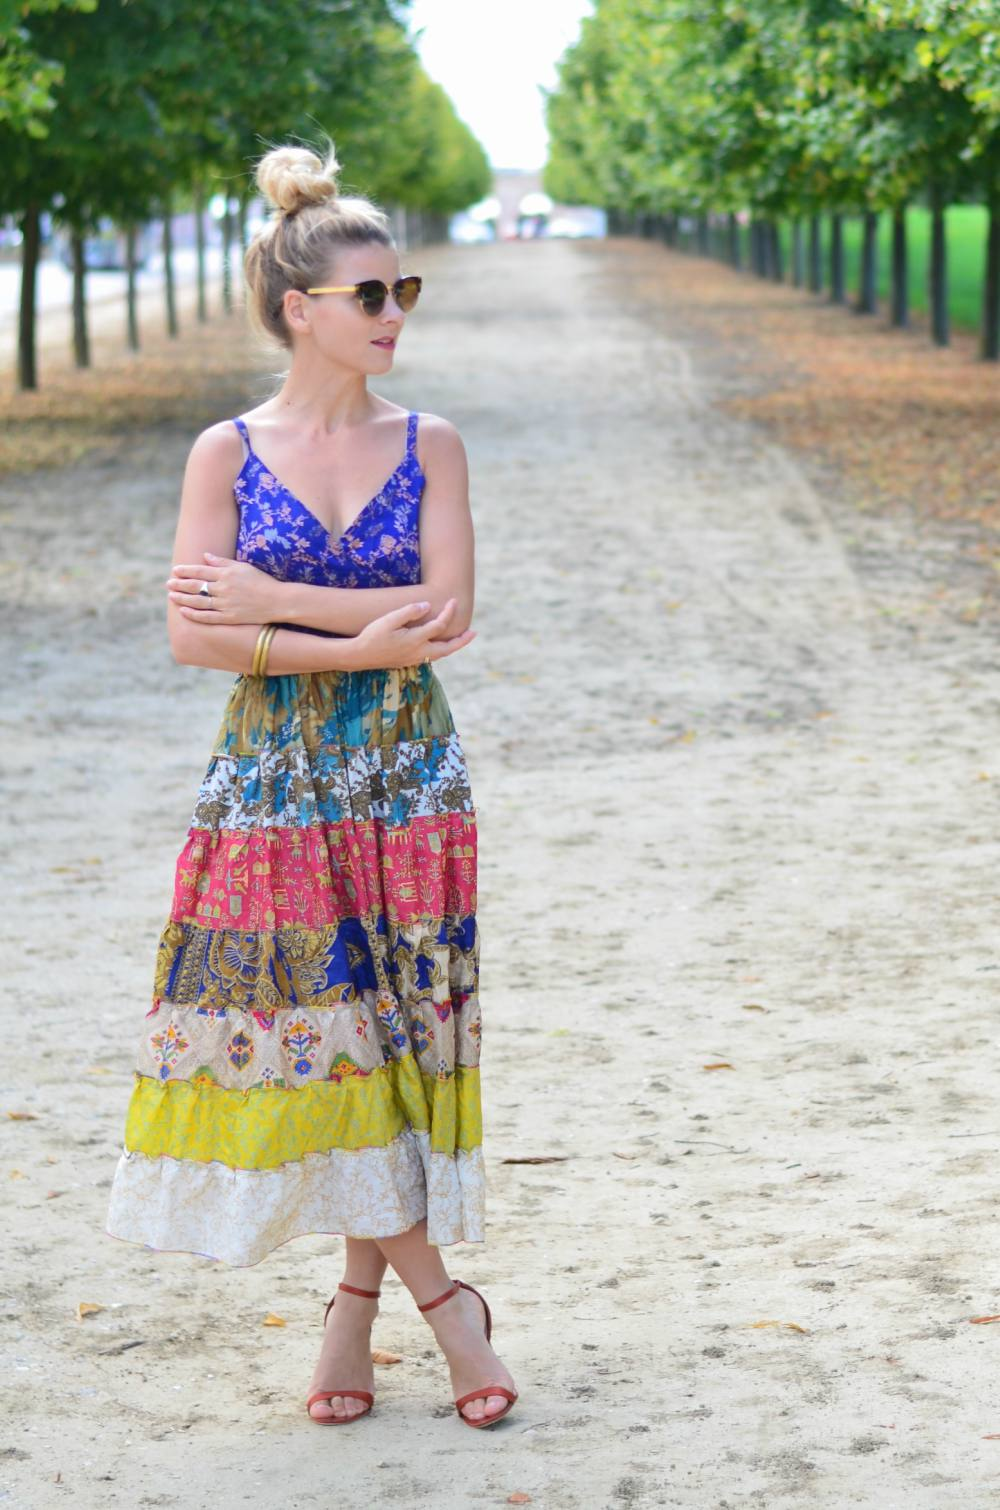 Blog mode Paris: Une robe midi bohême - hippie chic  Once, in Paris